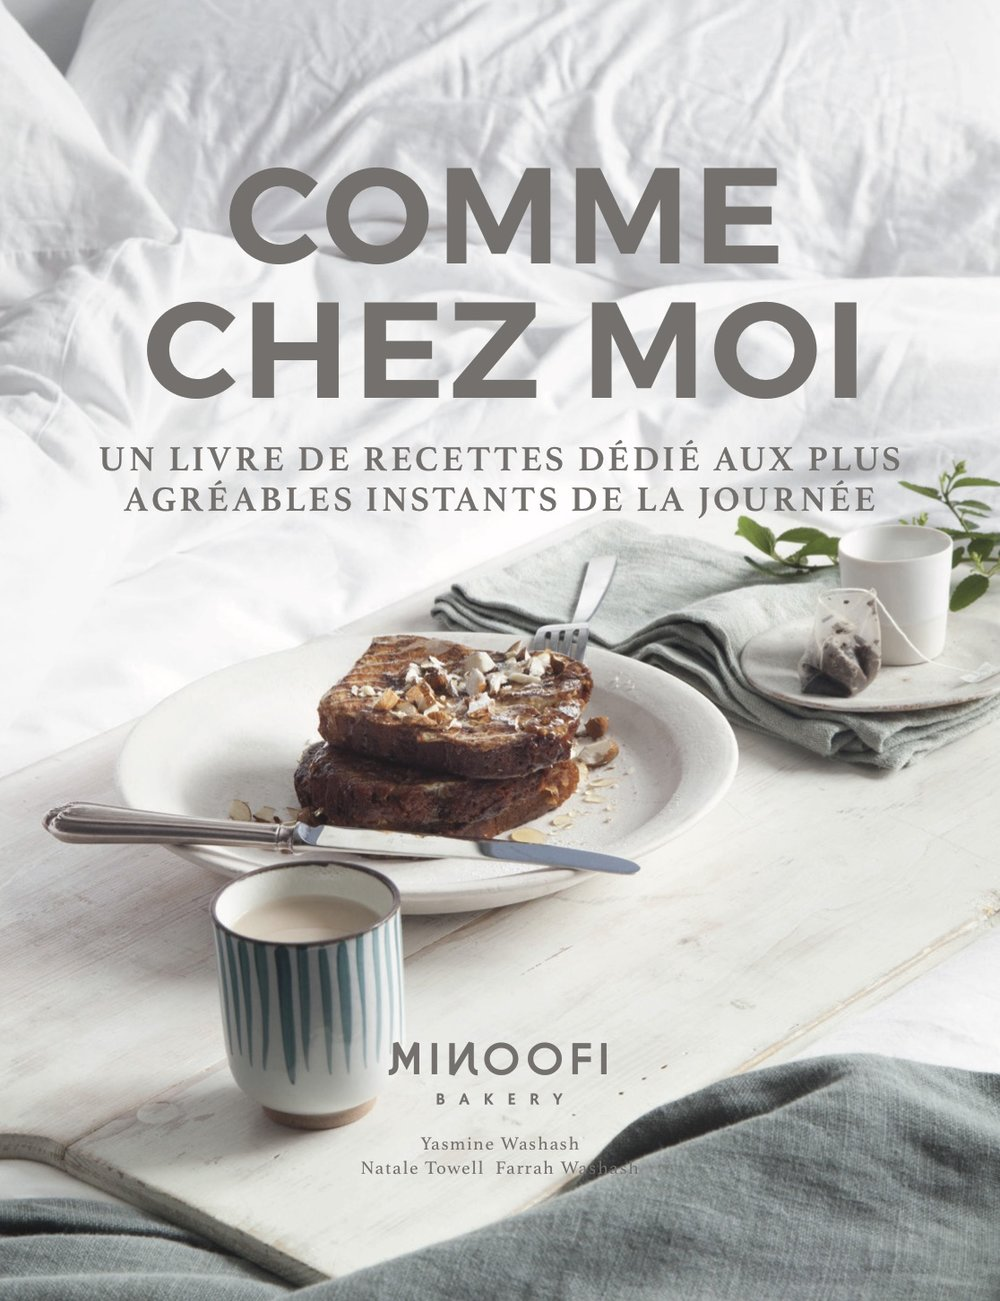 Minoofi Ebook French - Elle copy2.jpg